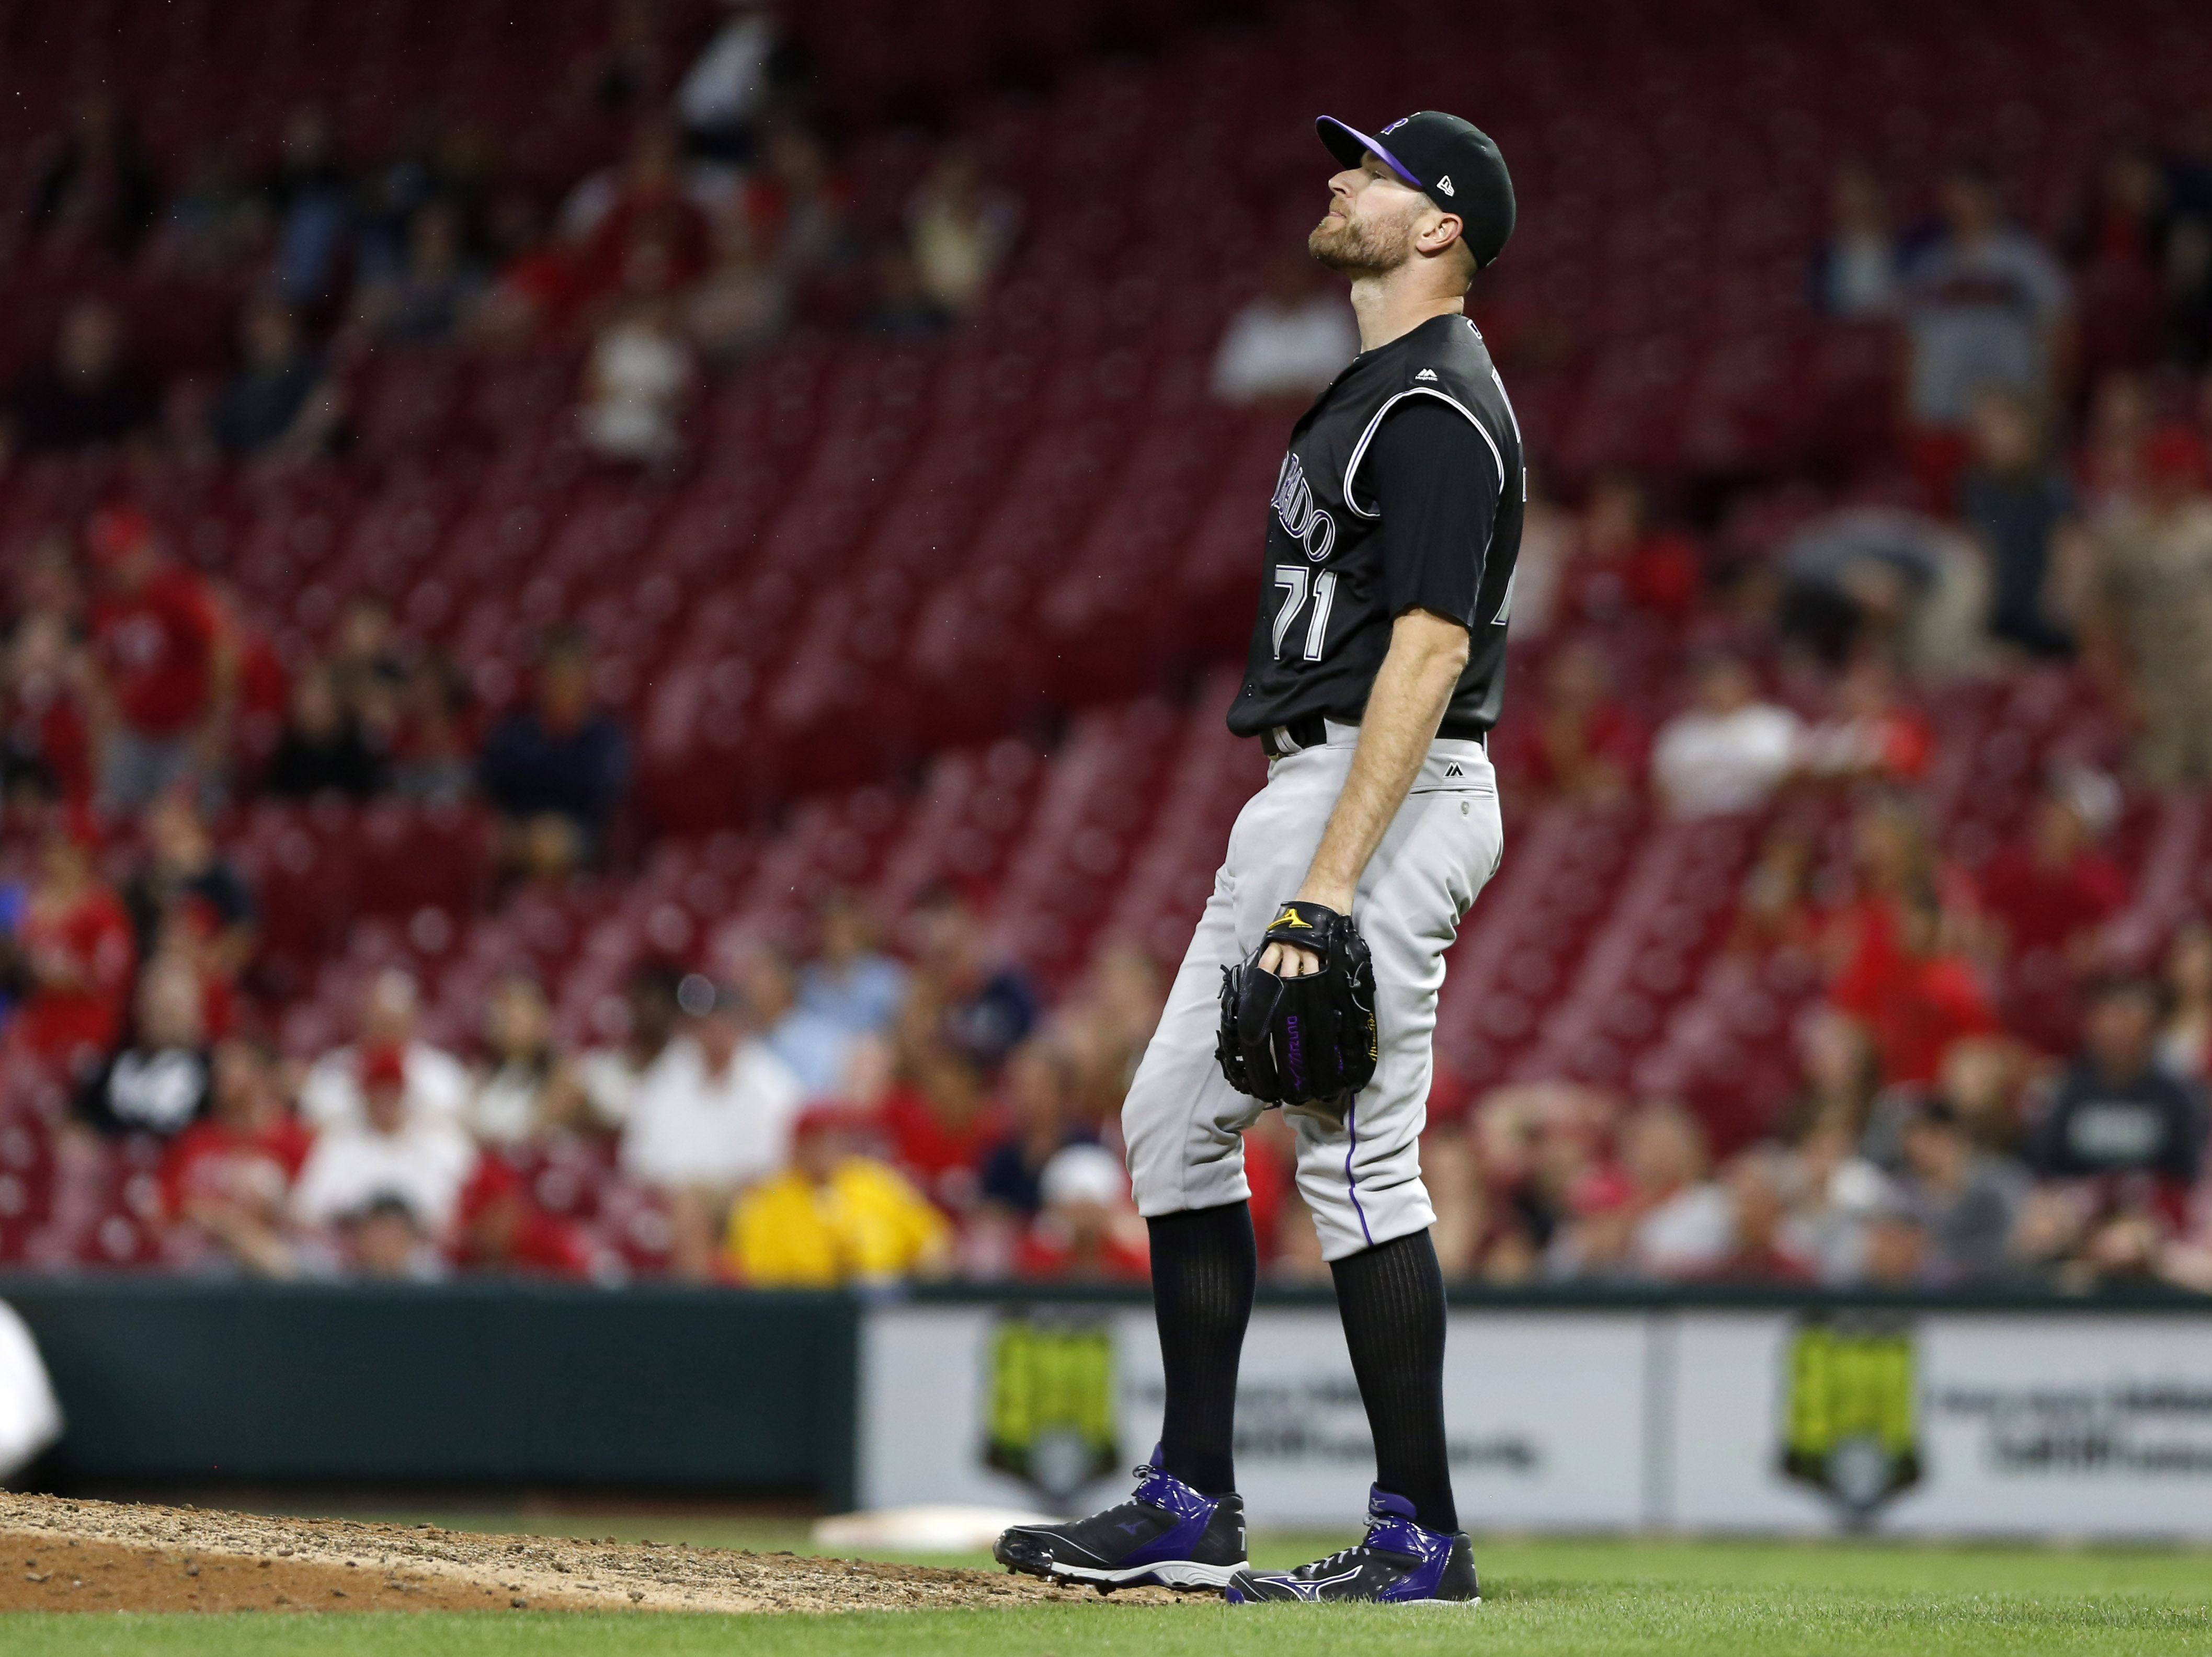 The Colorado Rockies' bullpen is downright awful